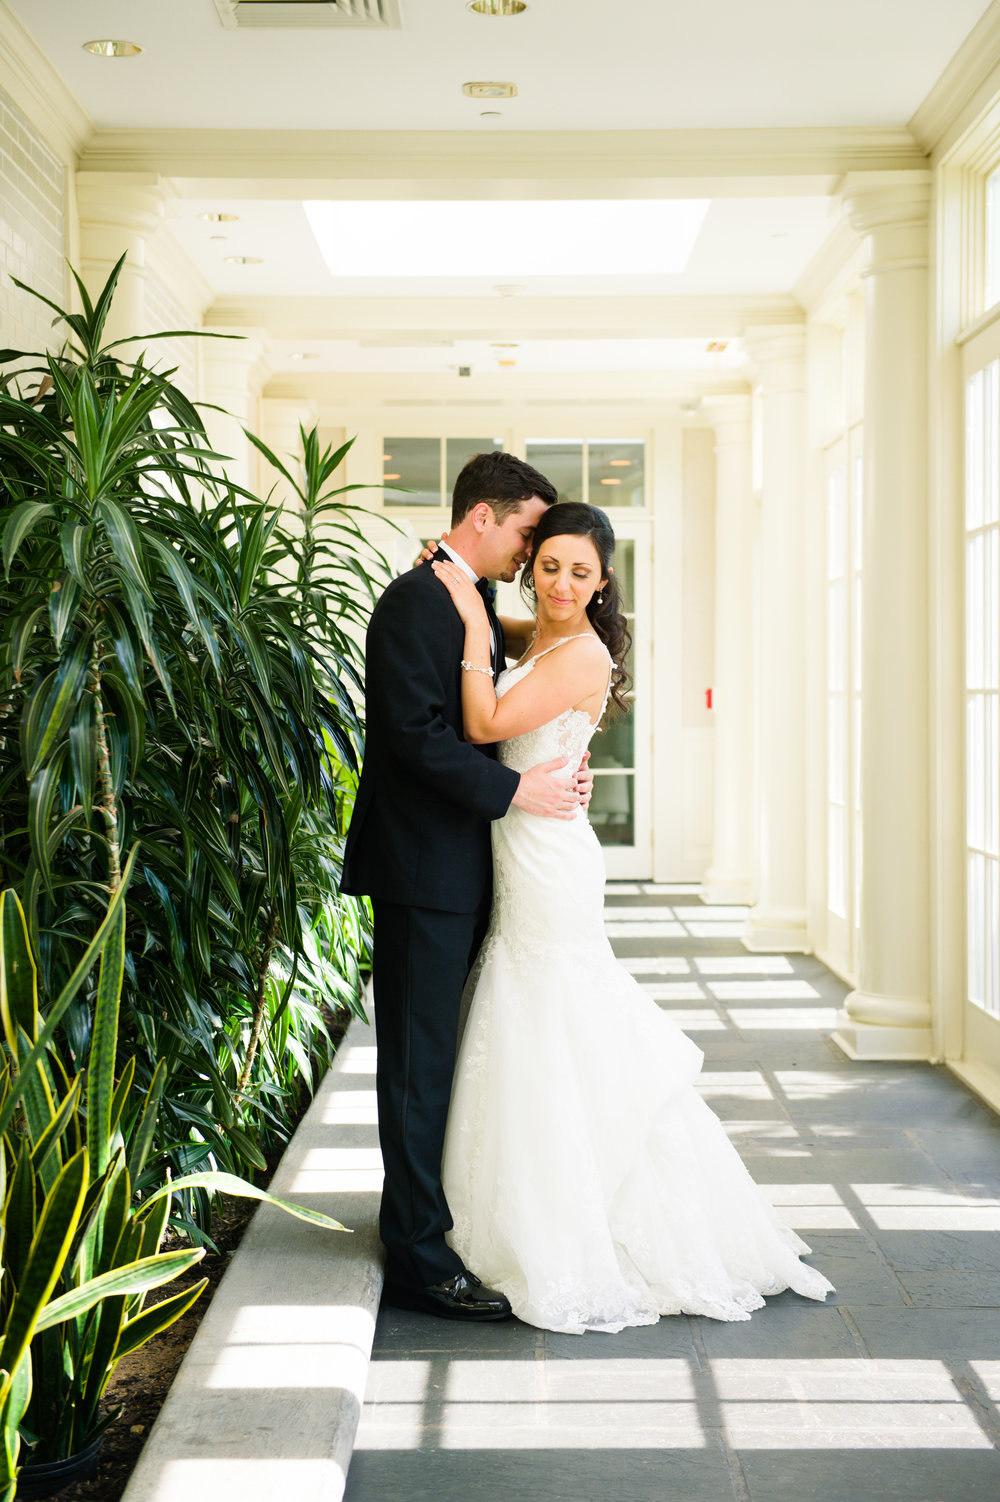 Lock and Co. Traci JD Medlock Washington DC Wedding Portrait Music Photography Videography Lifestyle Photographers Virginia Engagement Session lizjohn-bridegroomportraits-128.jpg